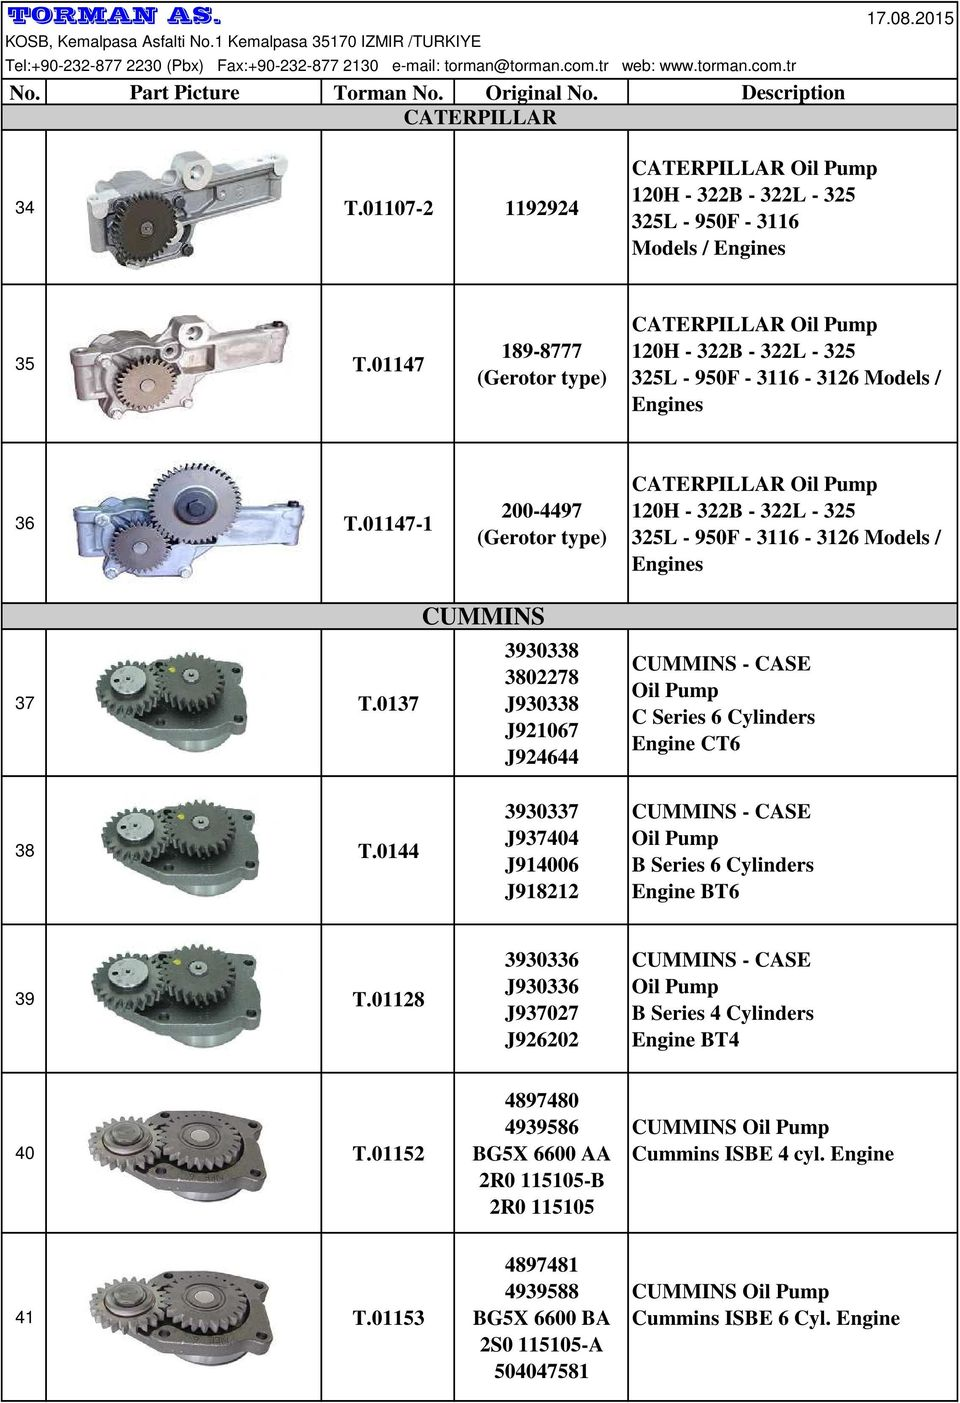 01147-1 200-4497 (Gerotor type) CATERPILLAR 120H - 322B - 322L - 325 325L - 950F - 3116-3126 Models / Engines 37 T.